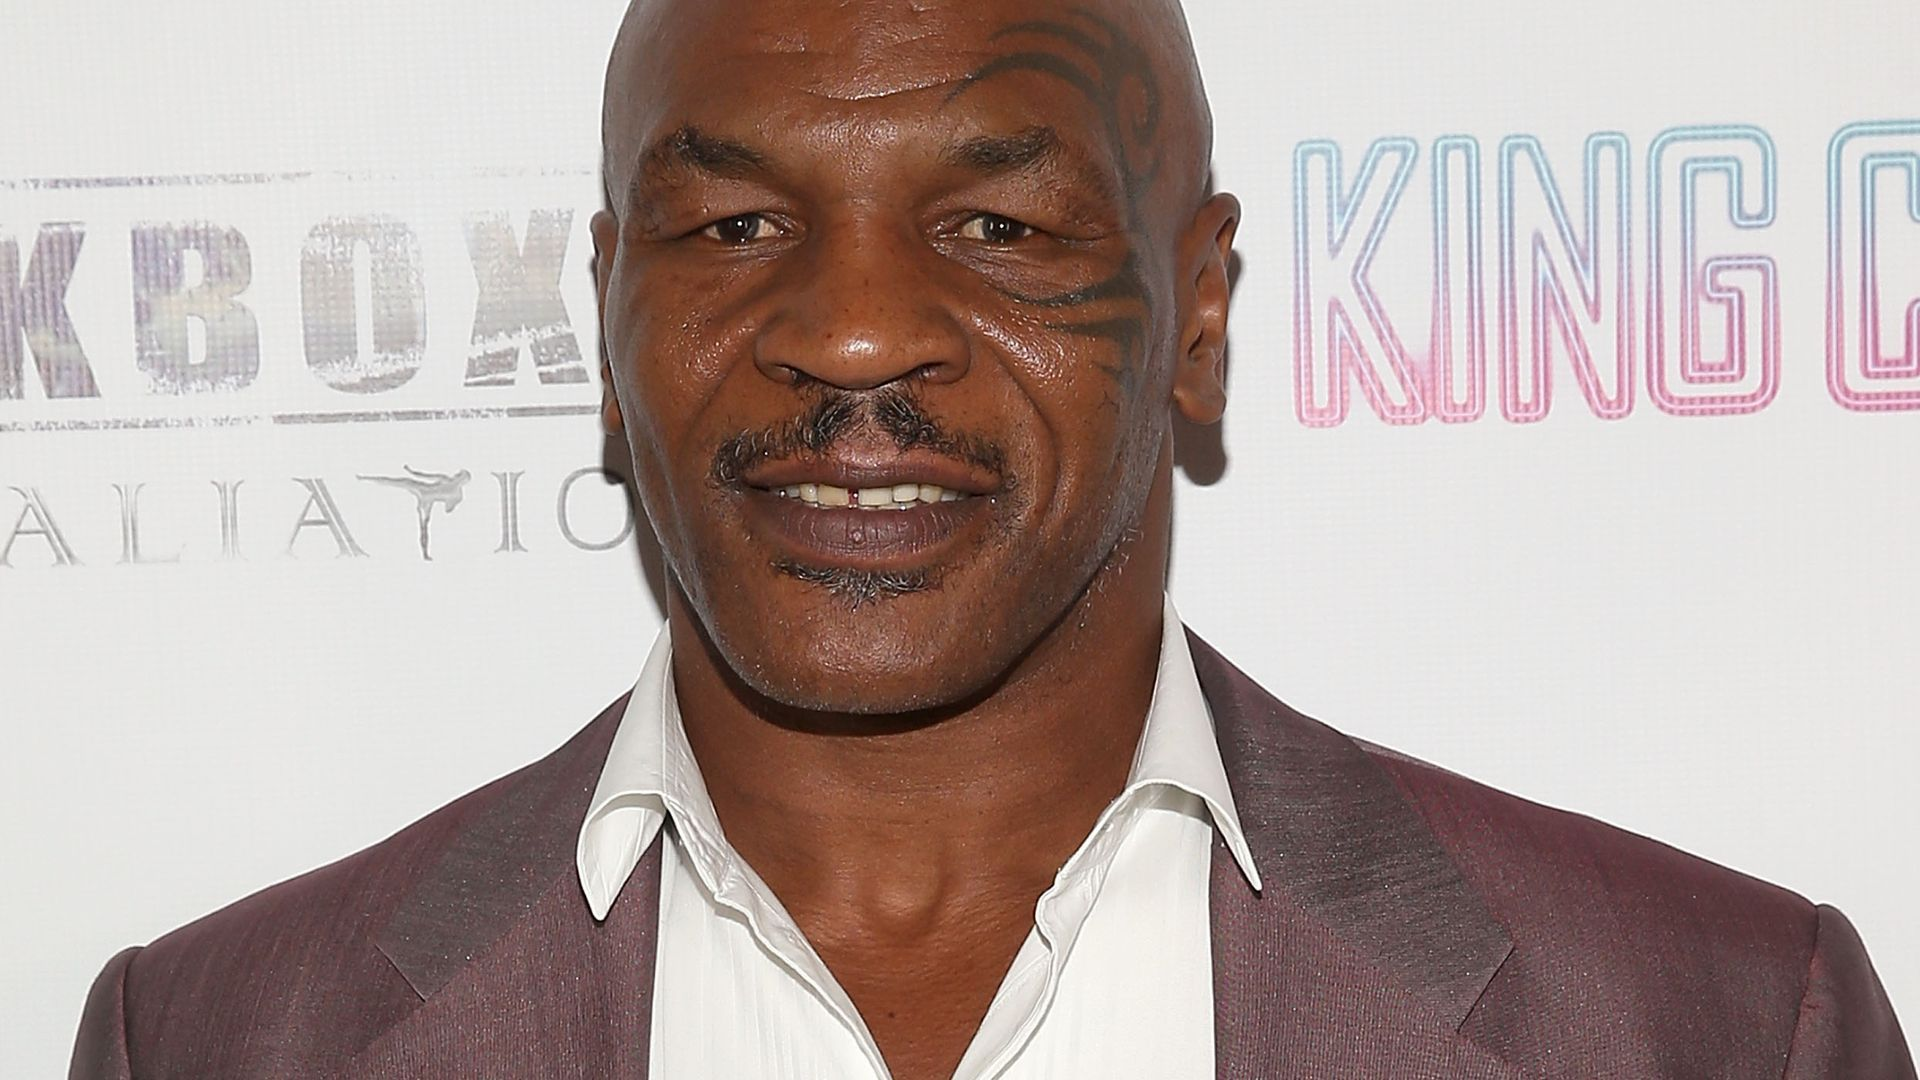 Mike Tyson new wallpaper